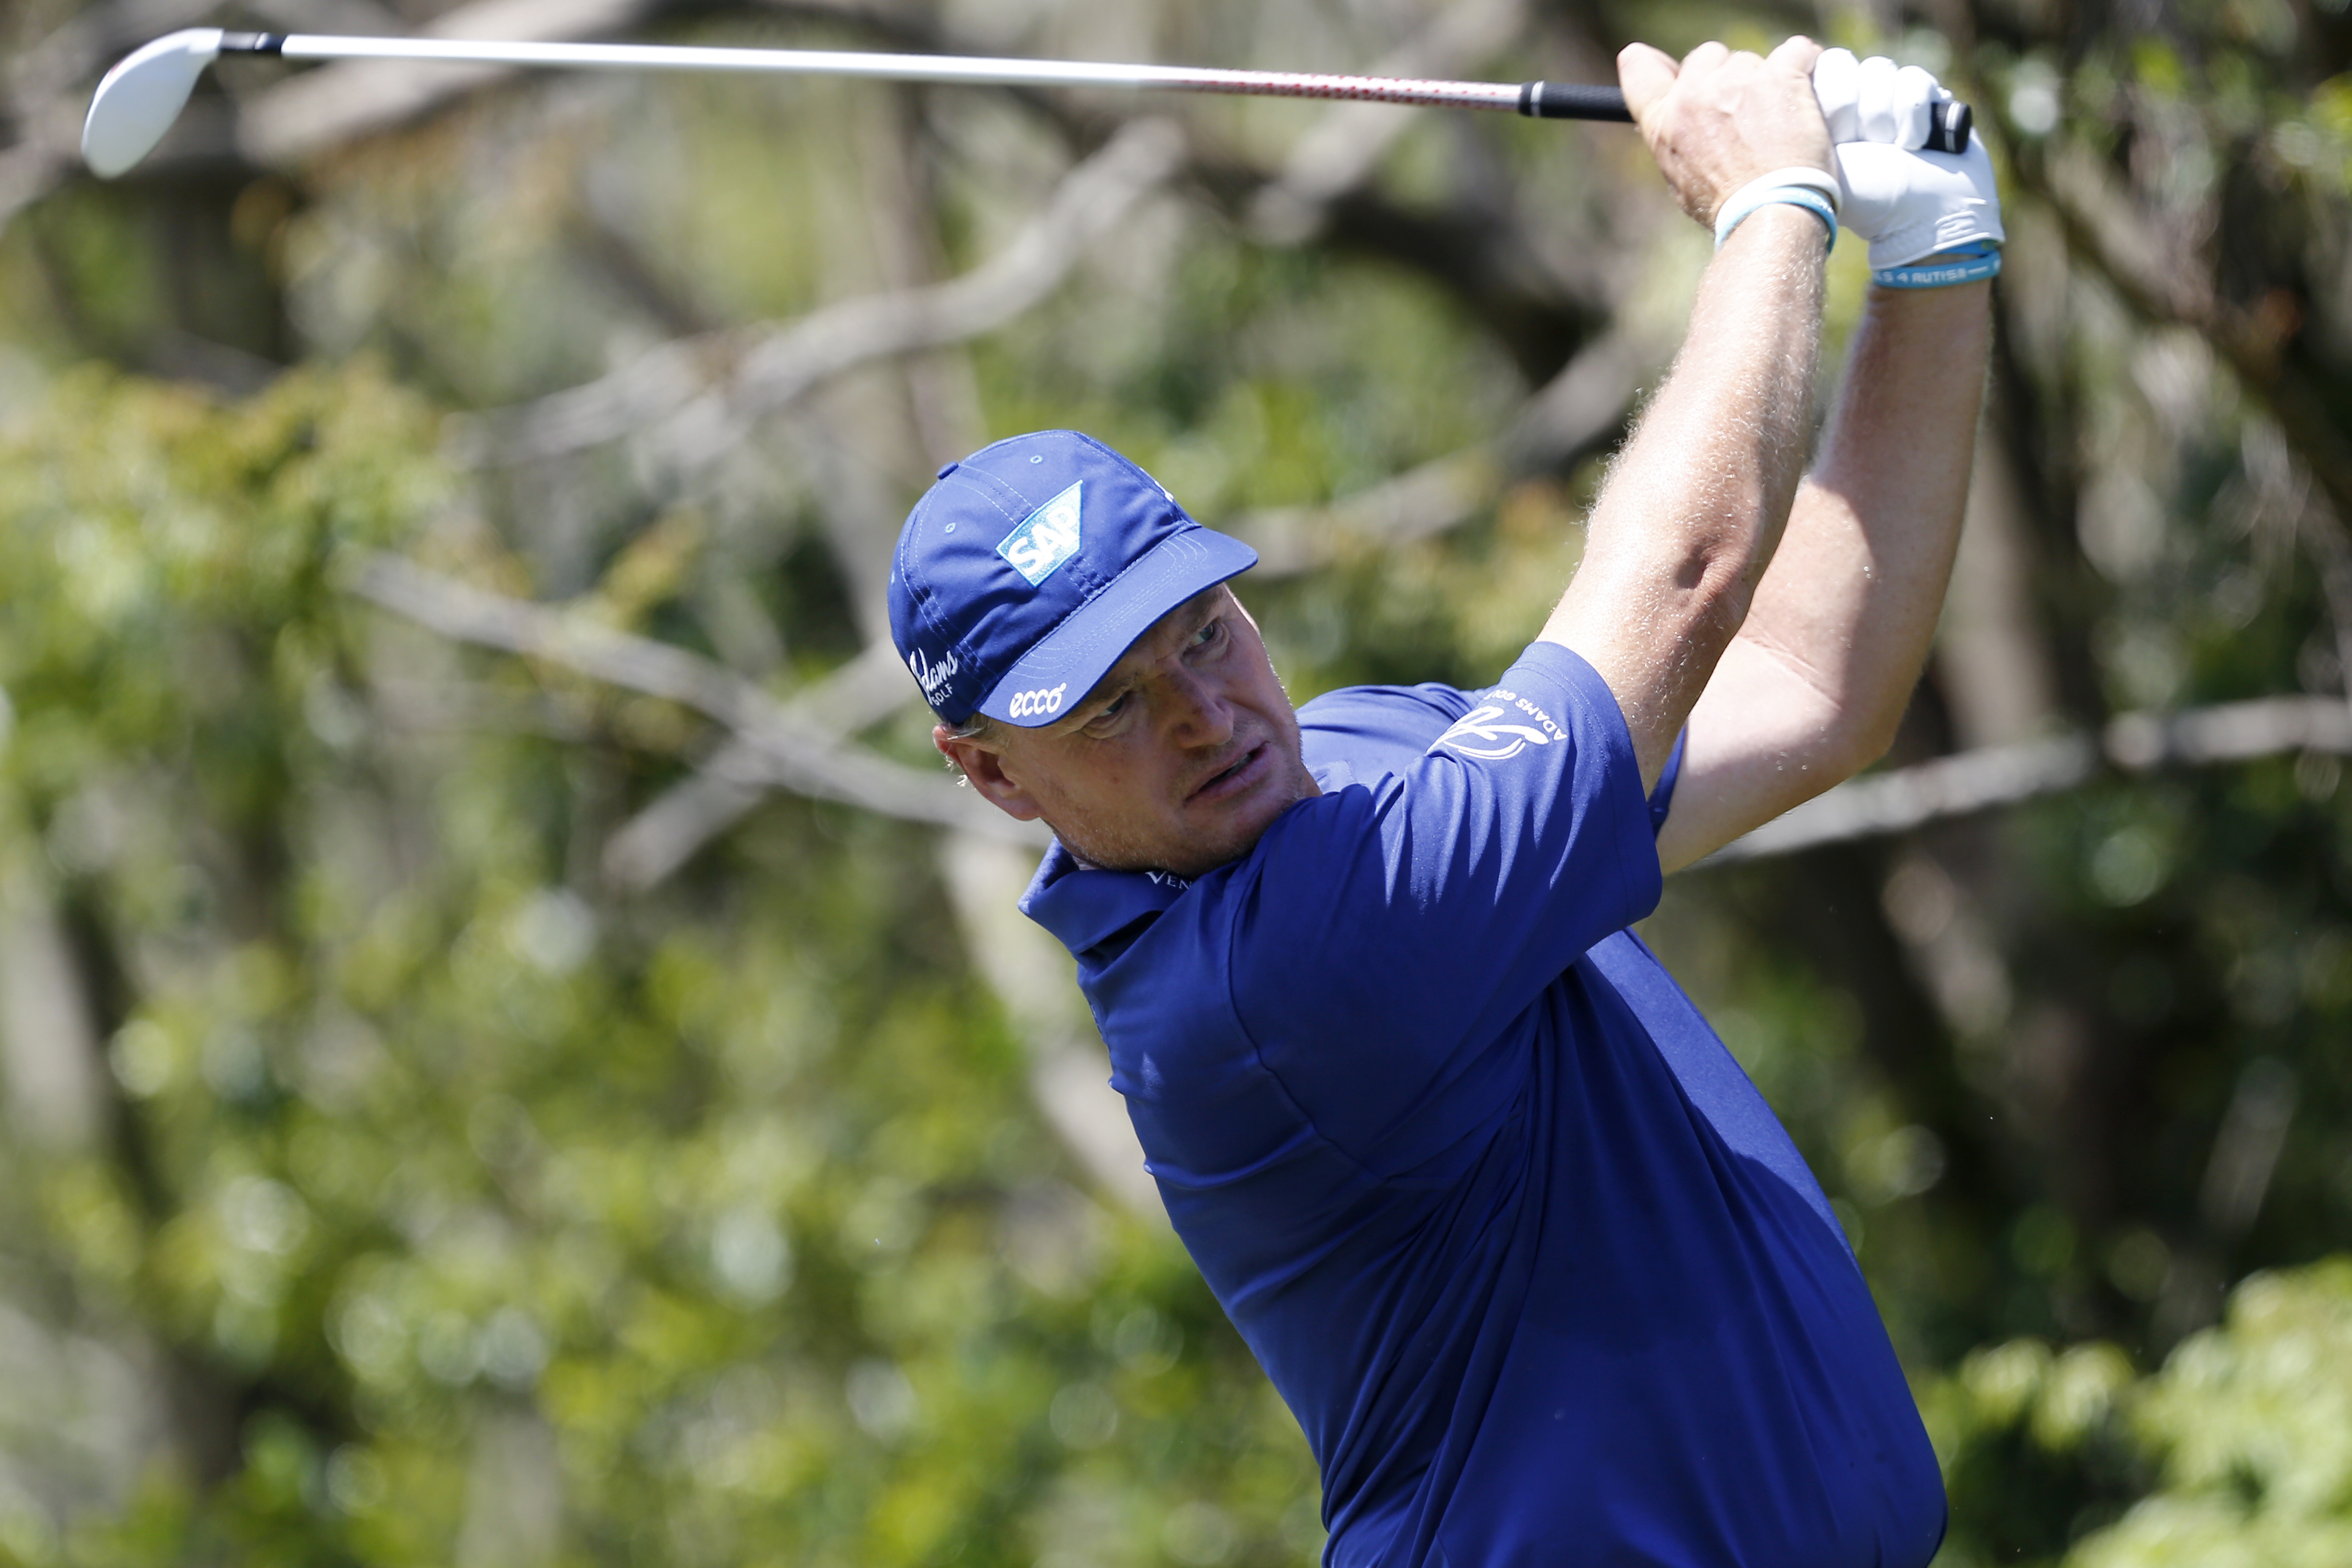 Ernie Els, of South Africa, tees off on the third hole during the third round of the Arnold Palmer Invitational in Orlando, Fla., on March 21, 2015.